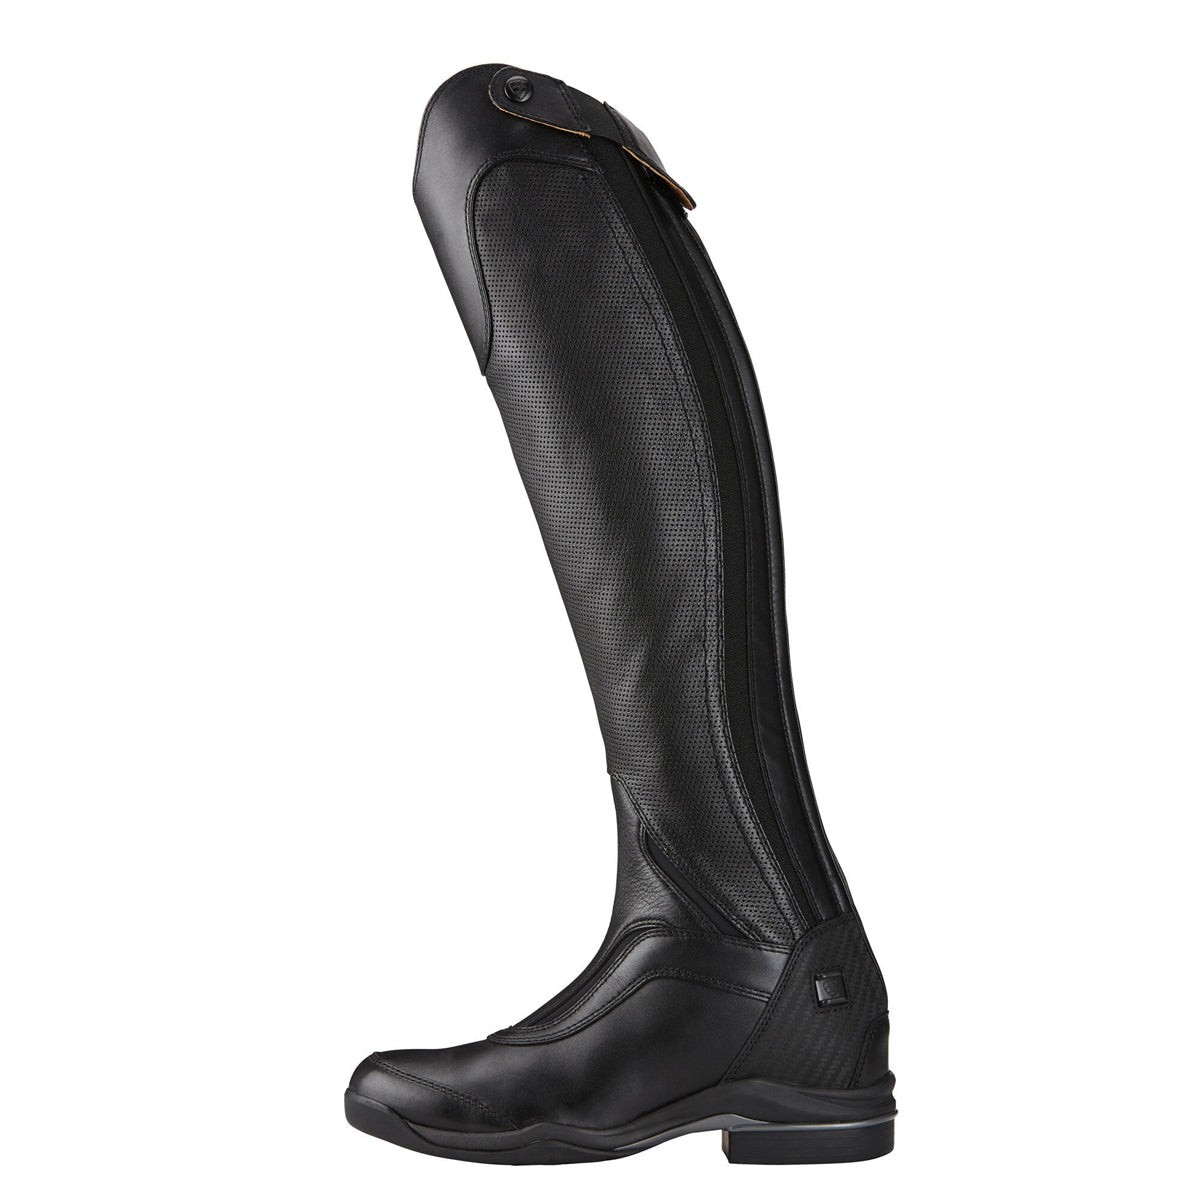 Ariat Women's V-Sport Tall Boot- All Black